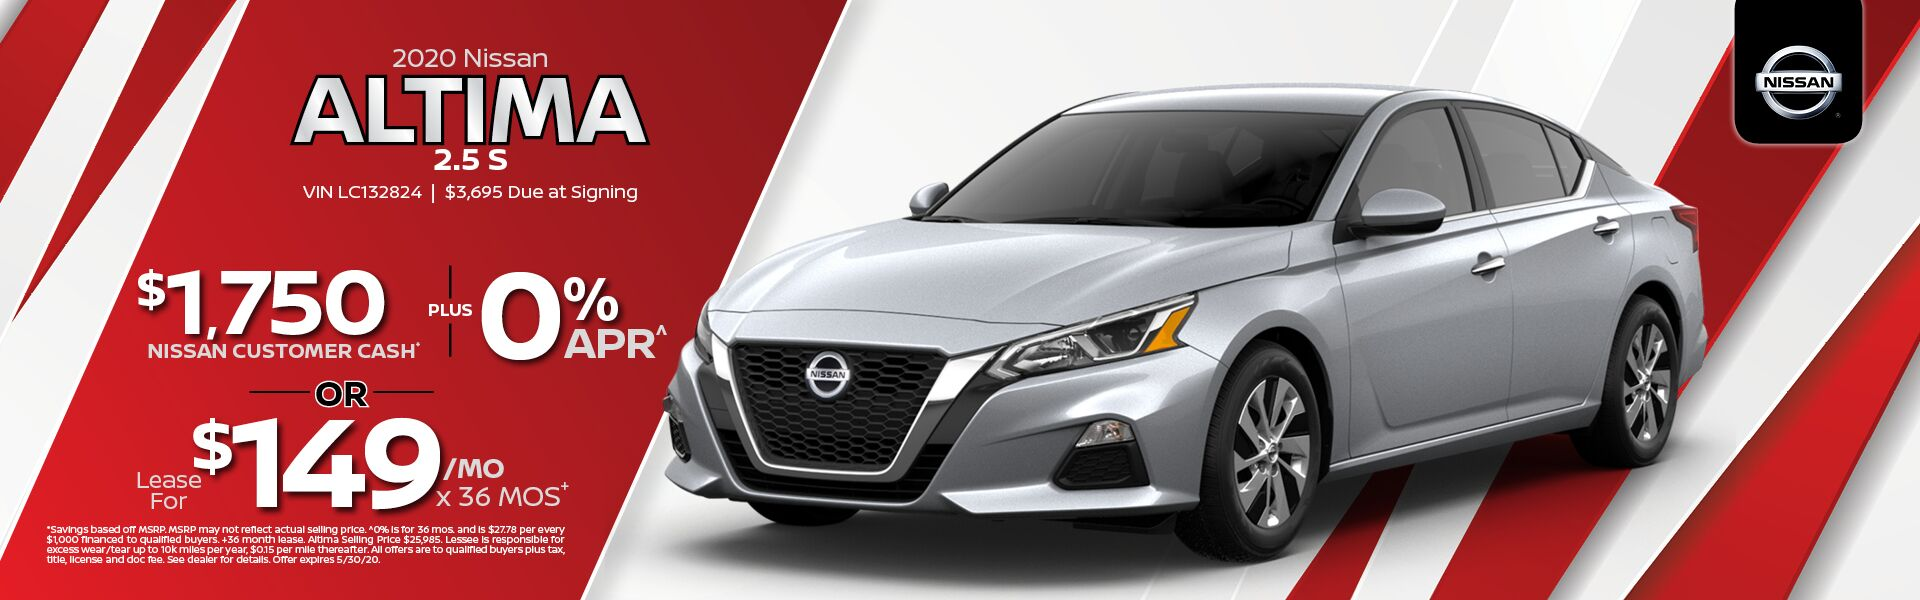 2020 Nissan Altima $1,750 Nissan Customer Cash and 0% Financing